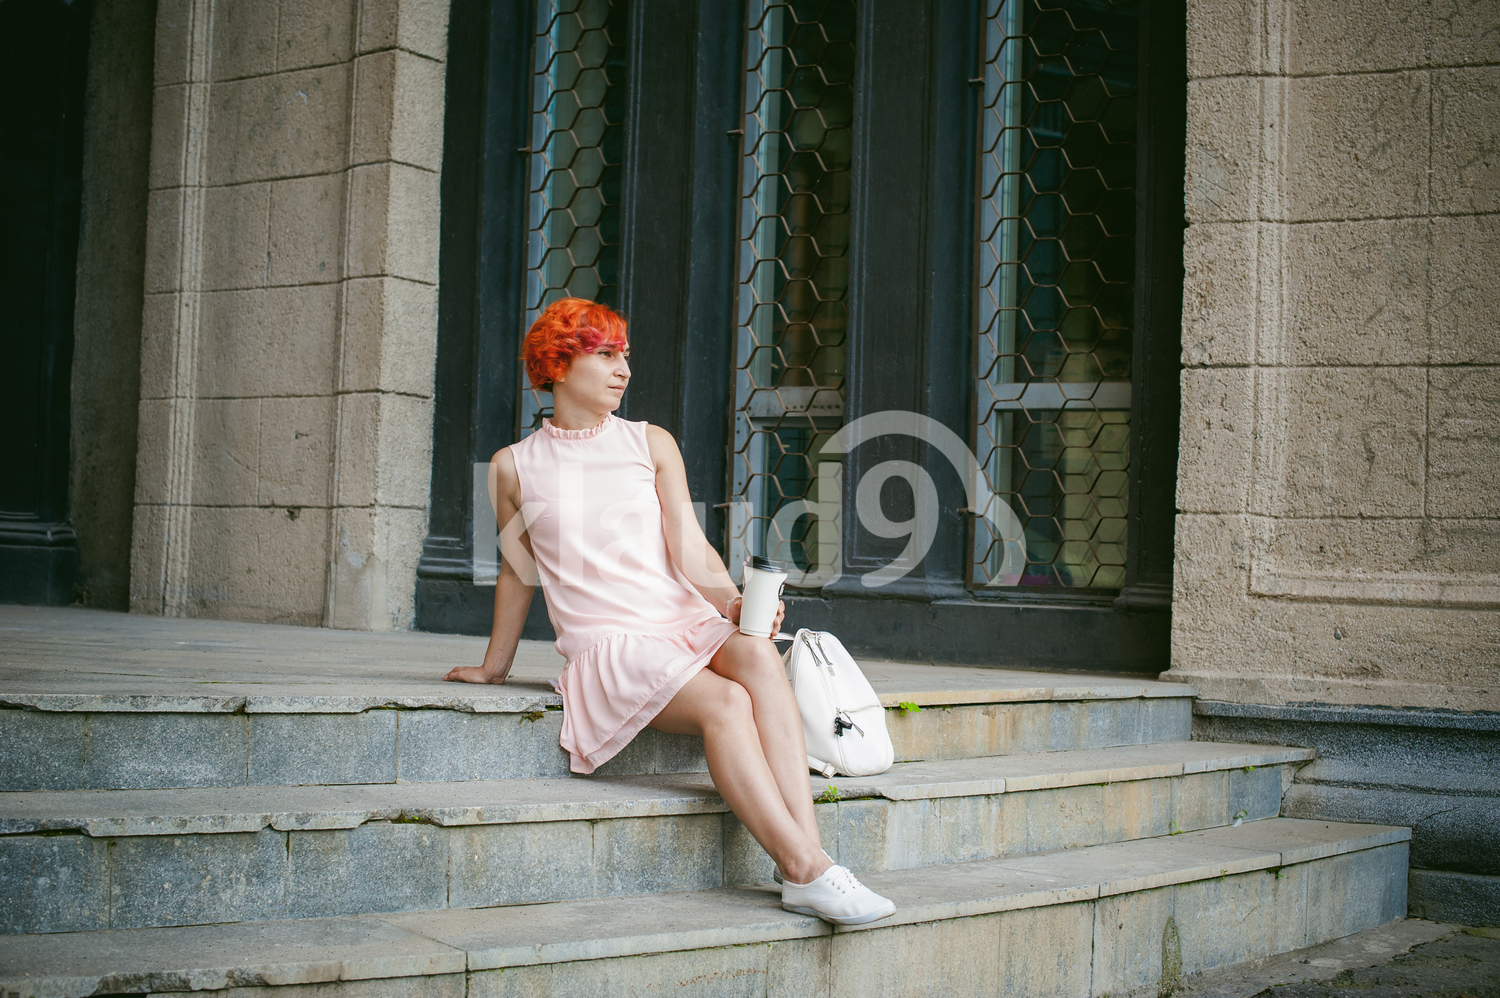 drinks coffee from a cup. woman with dyed red hair in a pale pink dress drinking coffee, holding a paper cup of coffee to go, sitting on the steps outside a summer day.